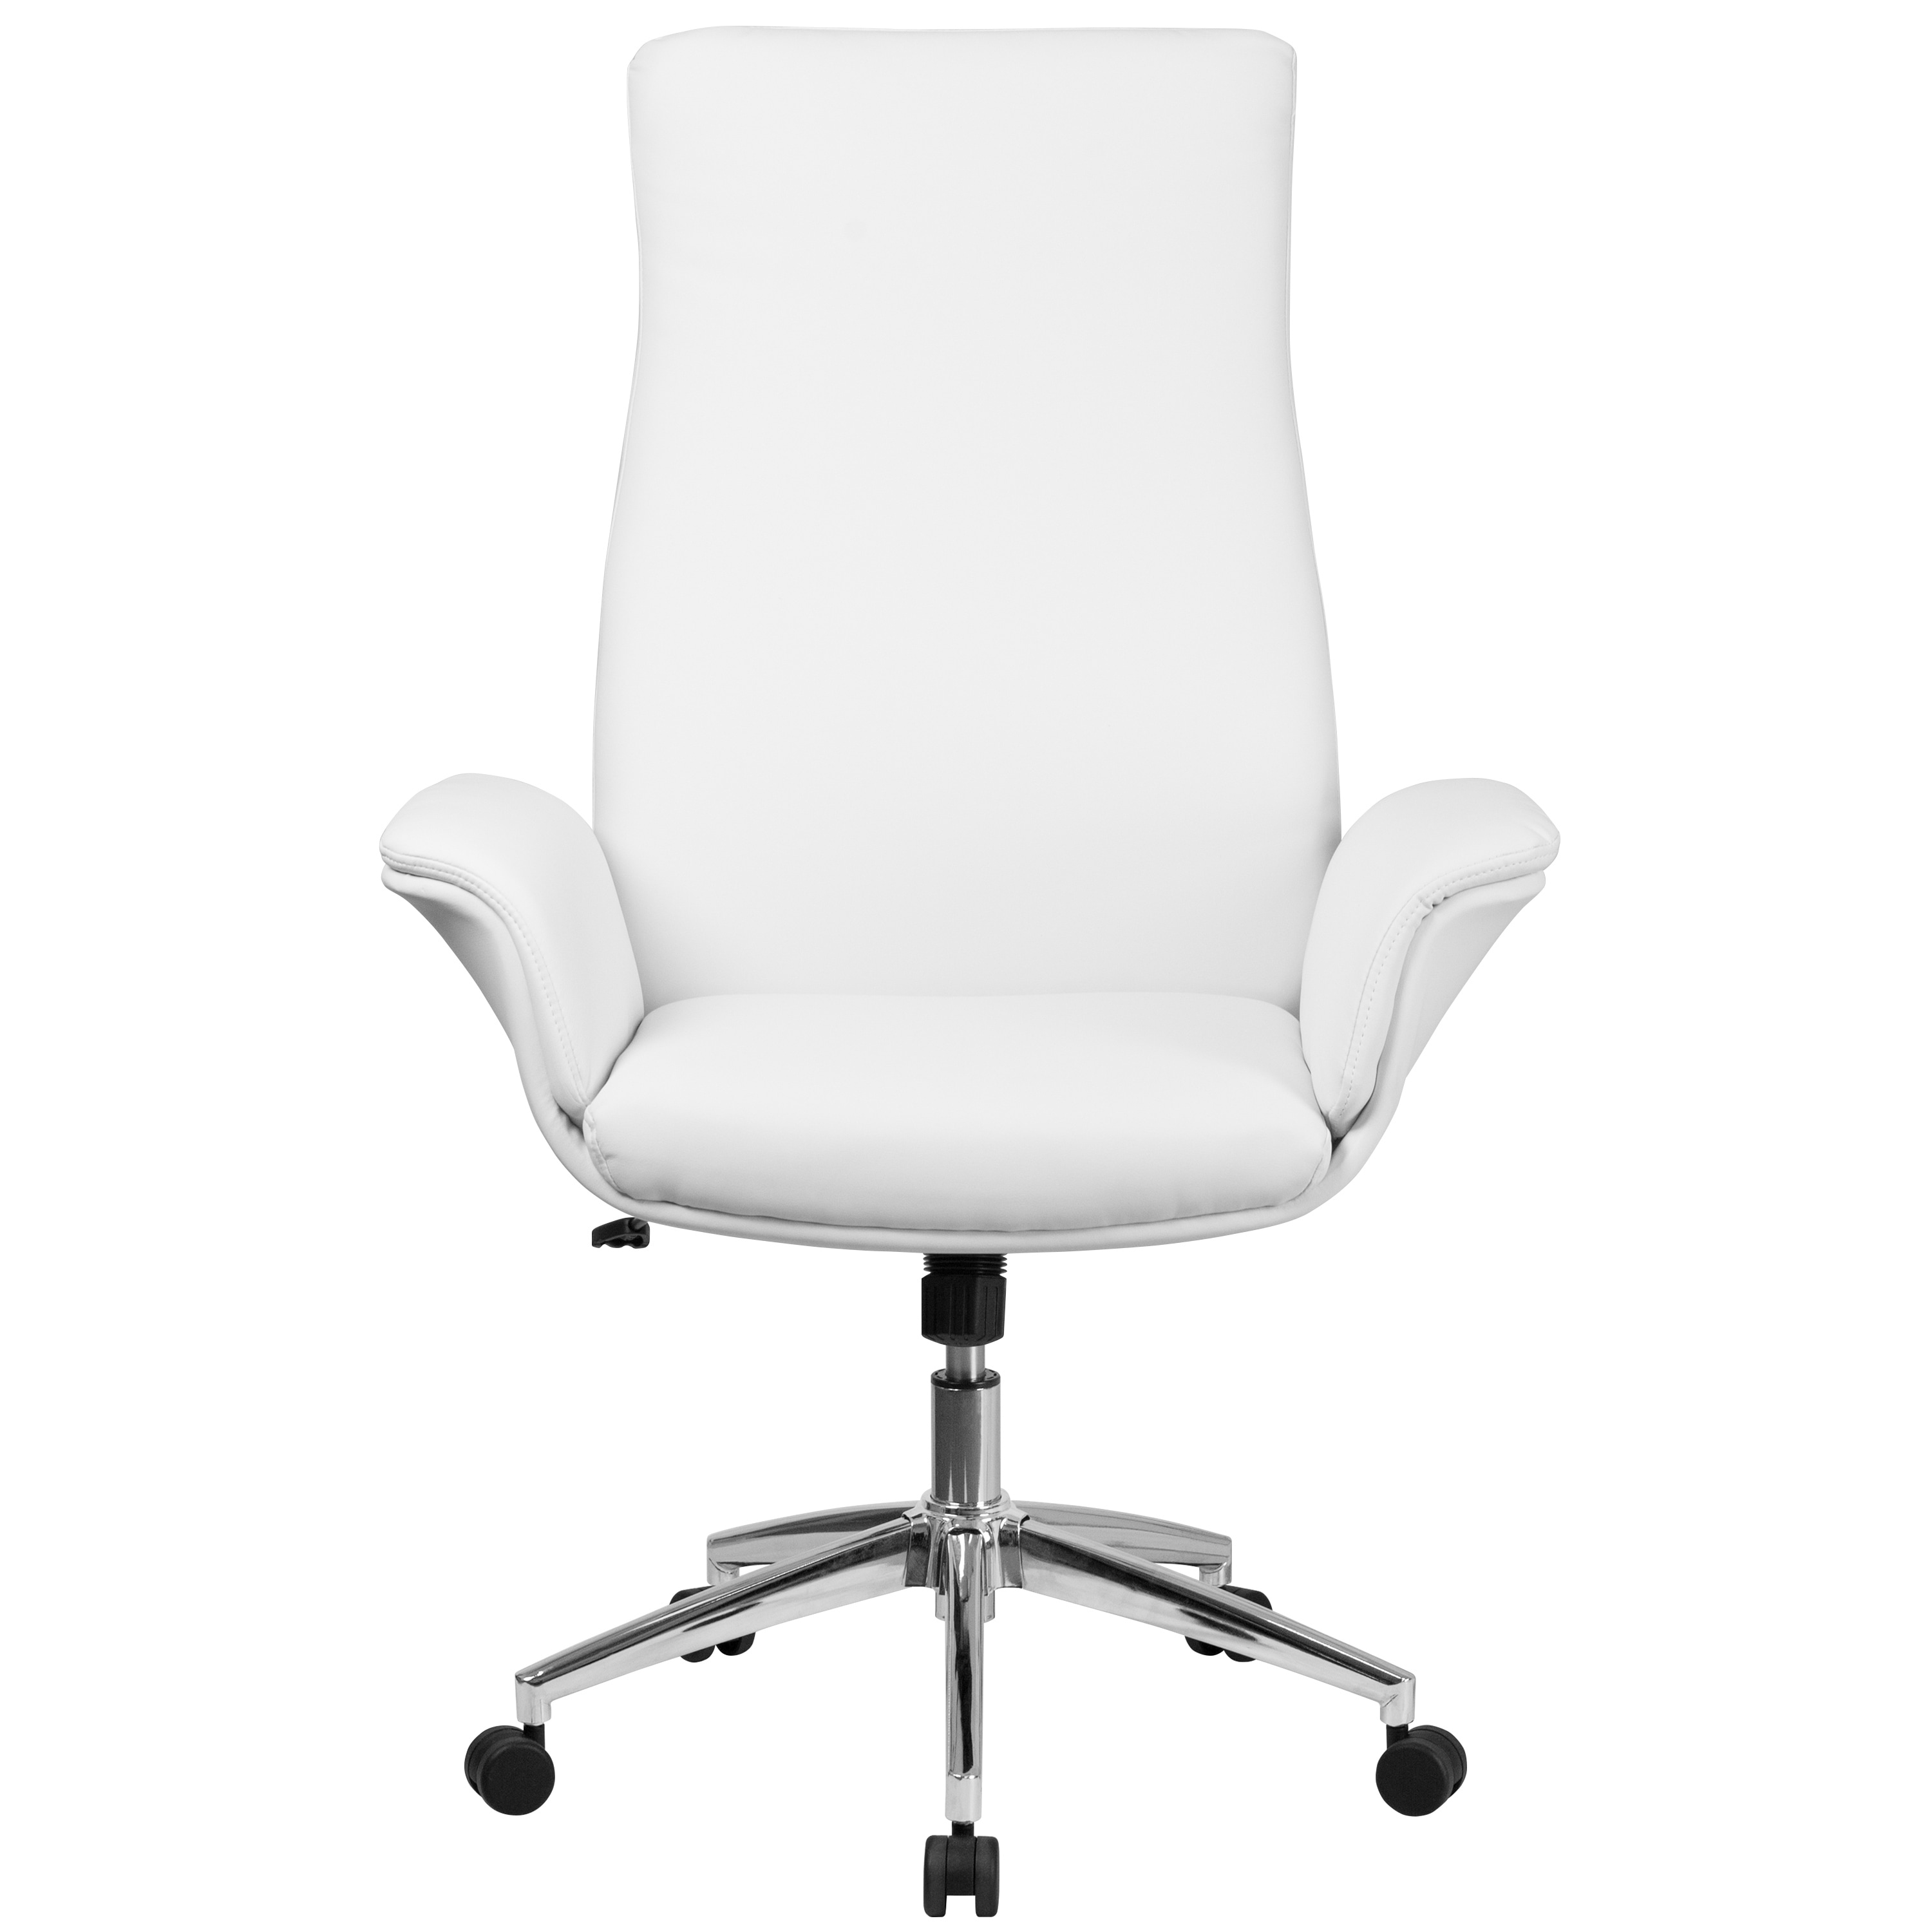 white leather swivel desk chair carters high shop executive back adjustable office with flared arms